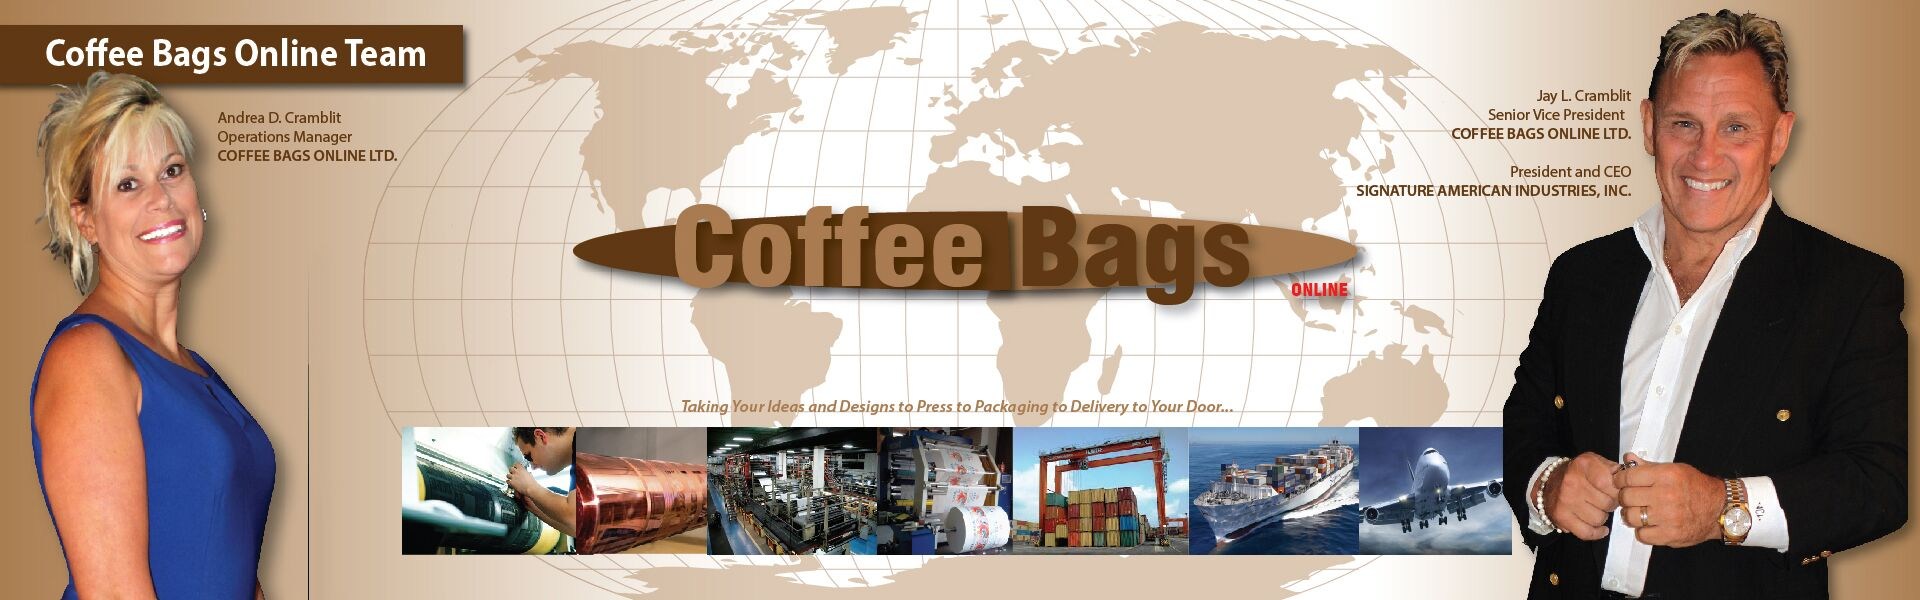 Coffee Bags Online About Header img